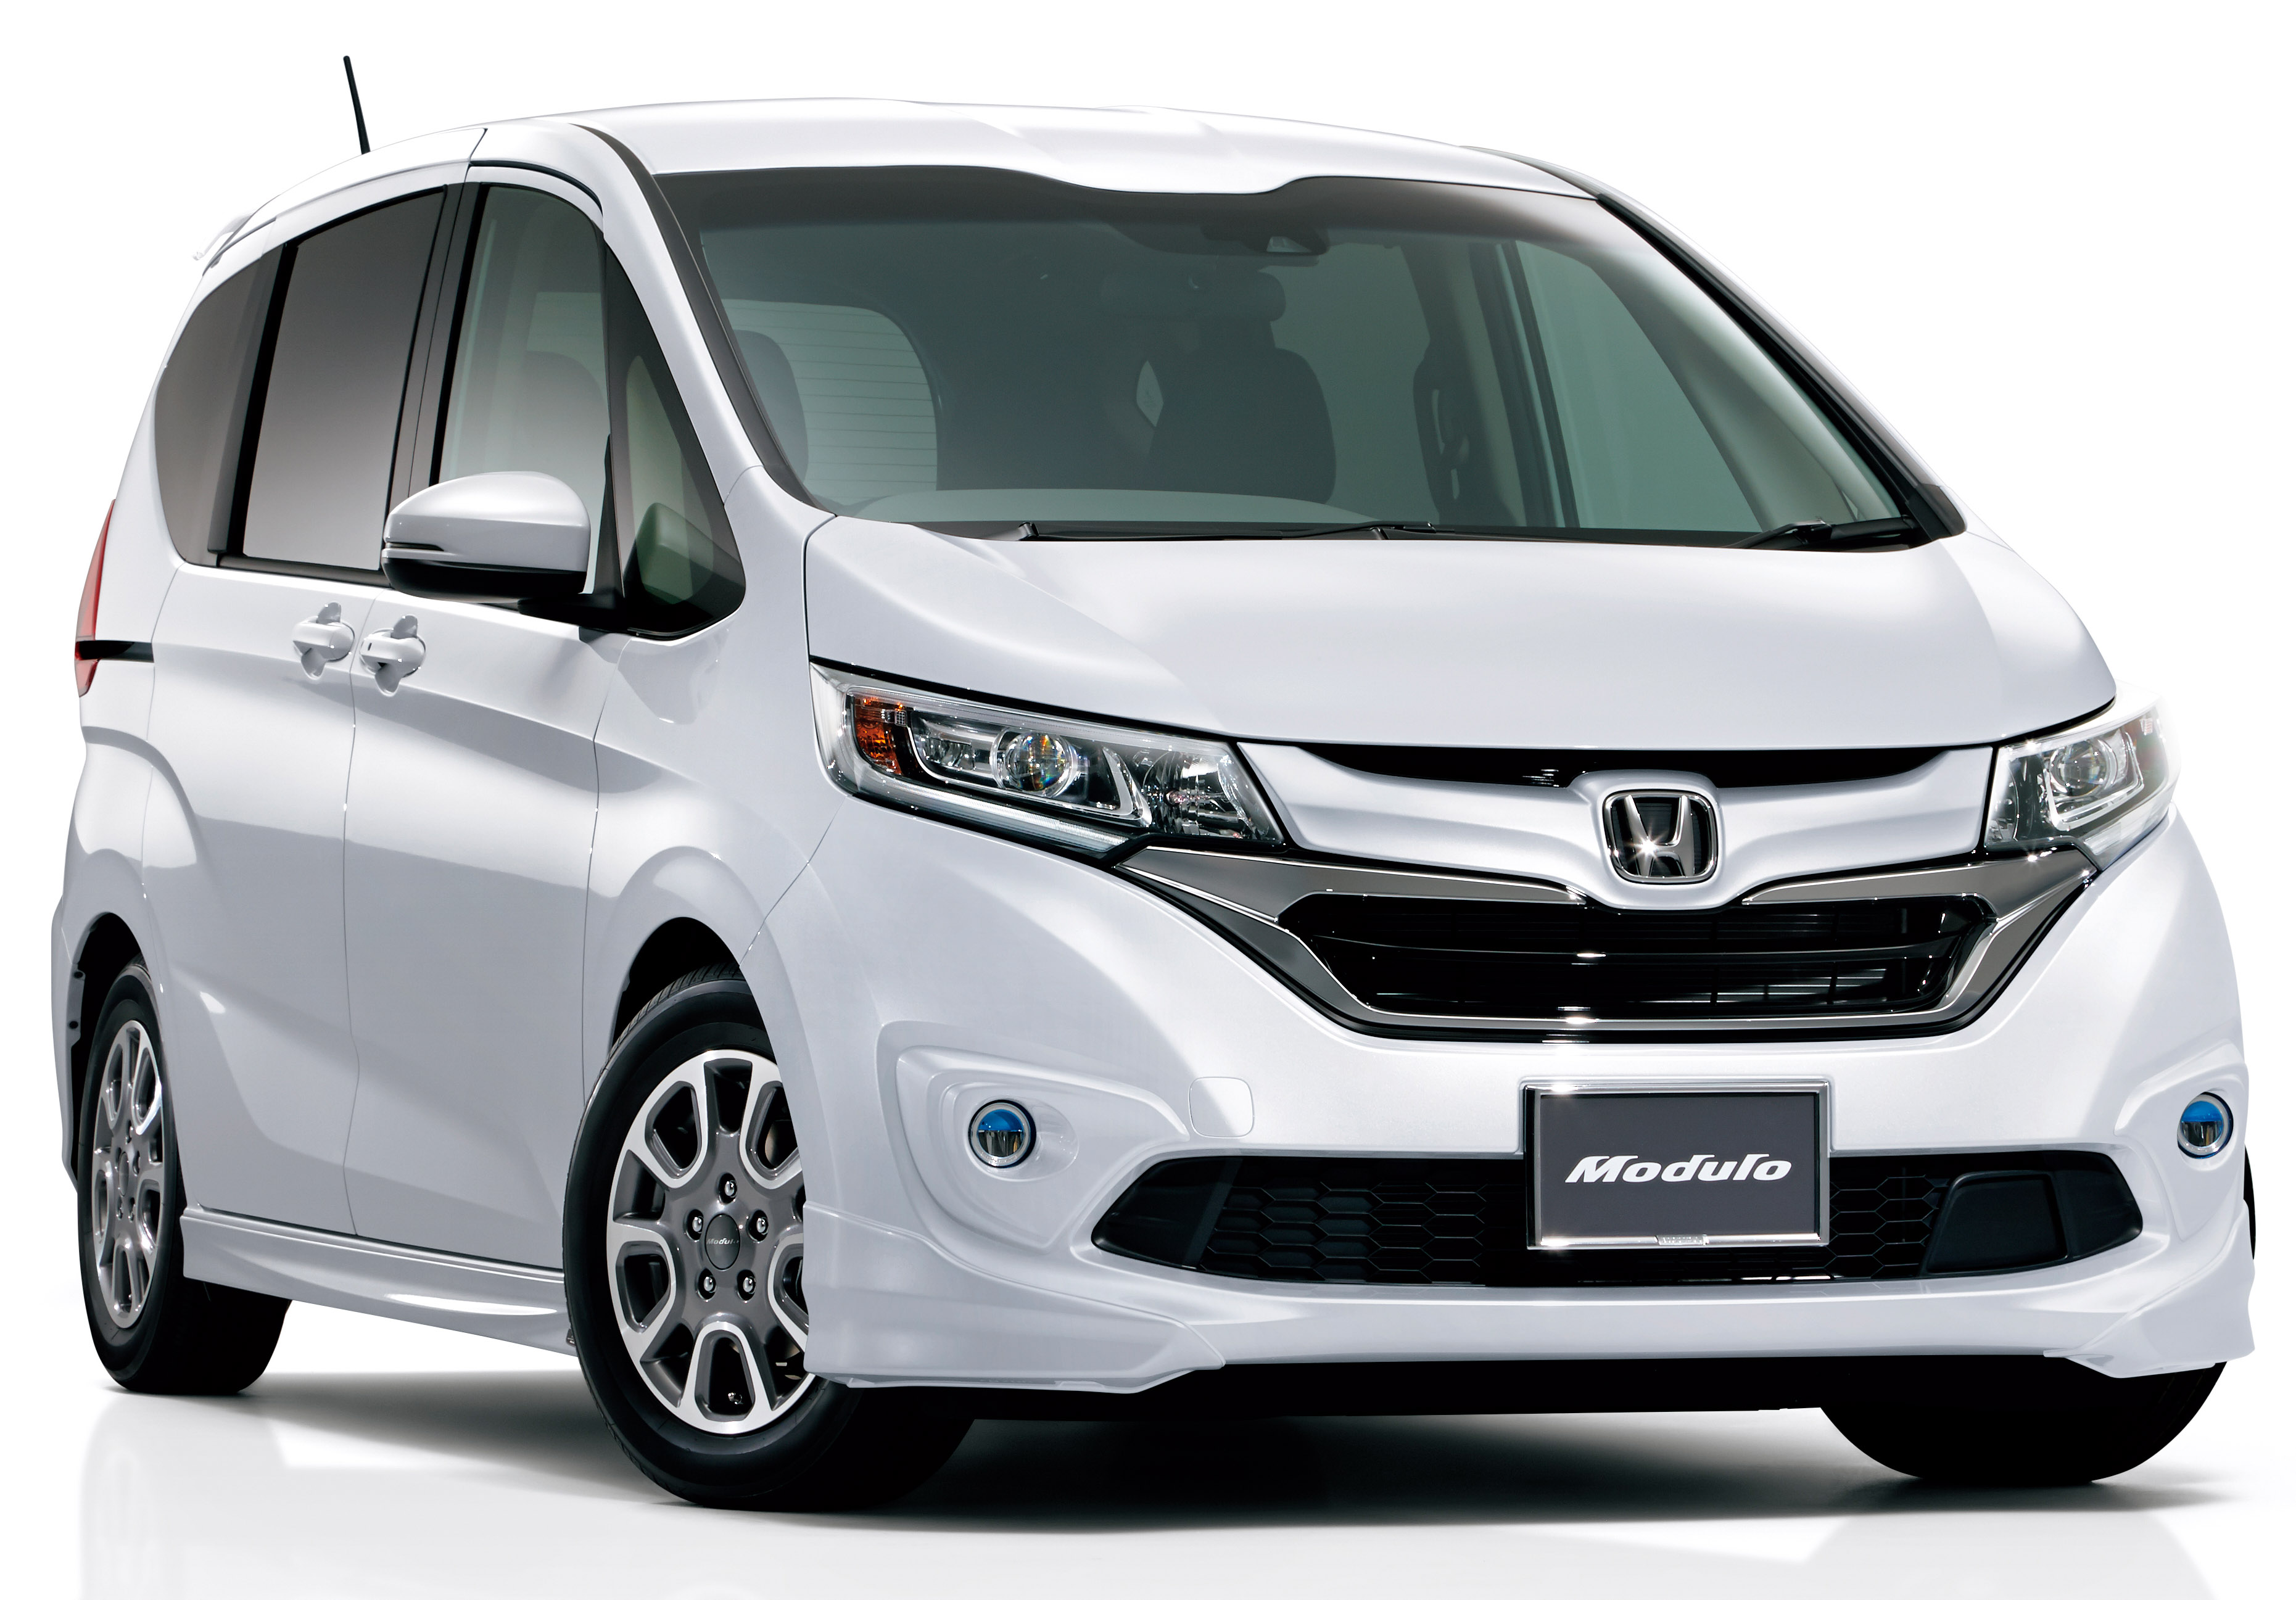 All-new 2016 Honda Freed goes on sale in Japan Image 549905